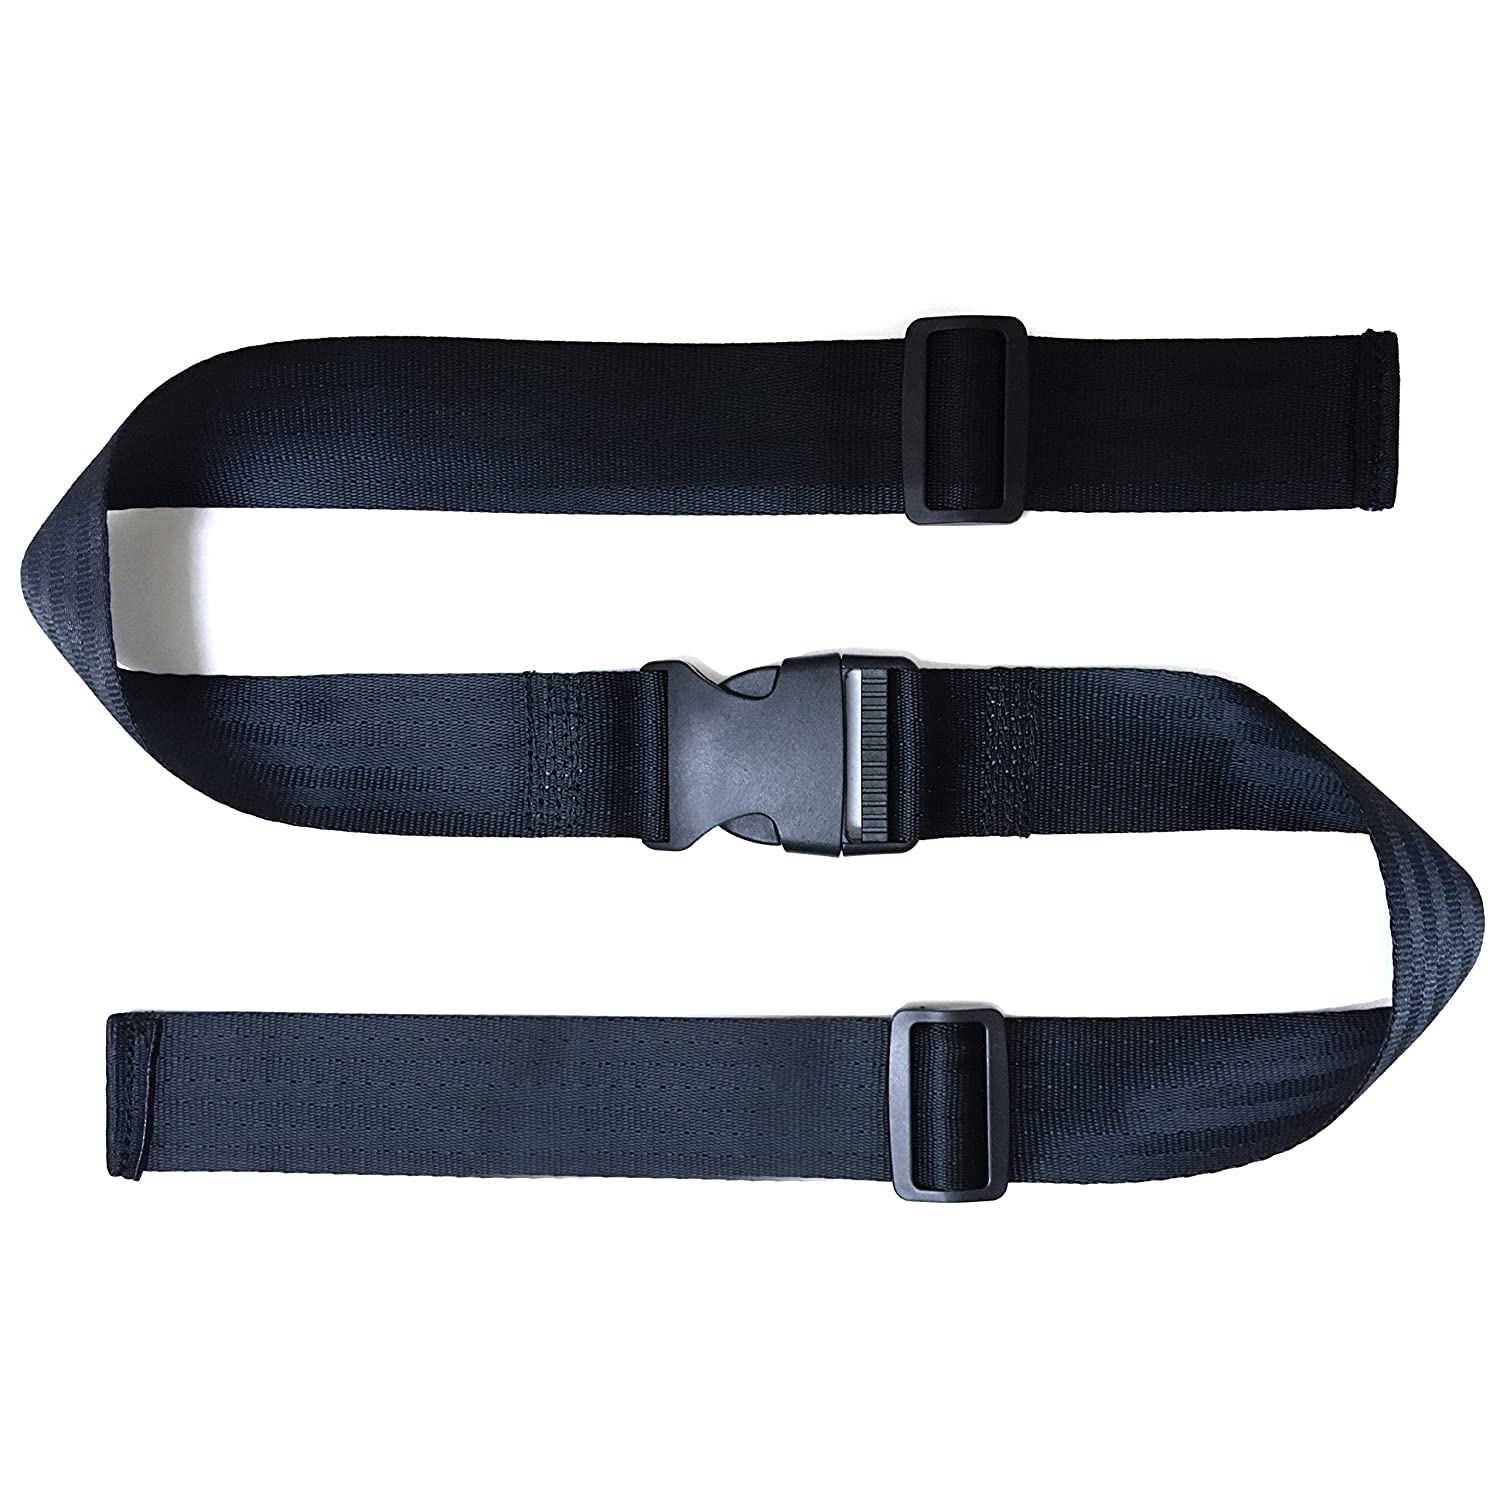 ZARPMA Baby 2 Point Safety Belt,Safety Harness for Child Kid Infant Safe Strap for Pushchair,HighChair,Child Chair,Stroller(1.4 M Length)